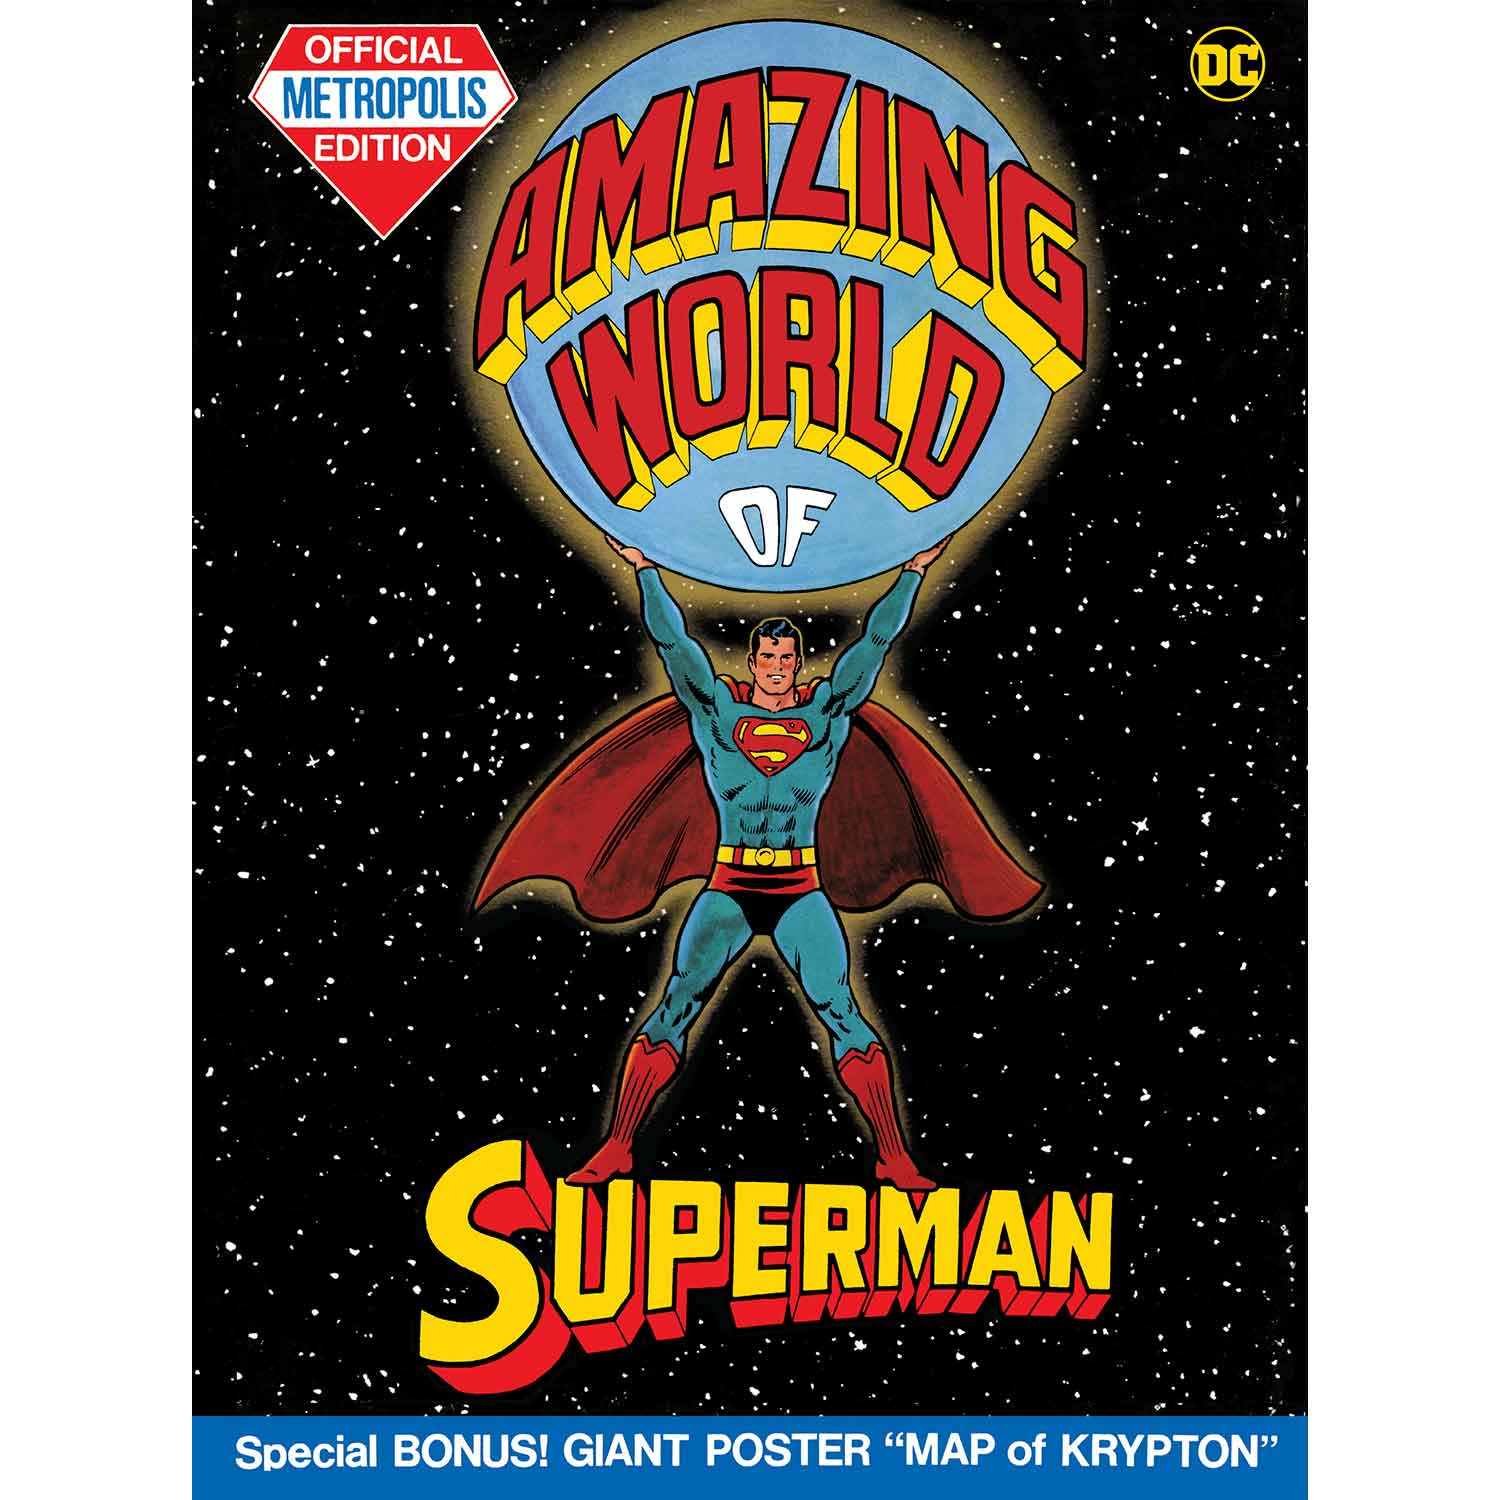 Amazing World Of Superman (Tabloid Edition)